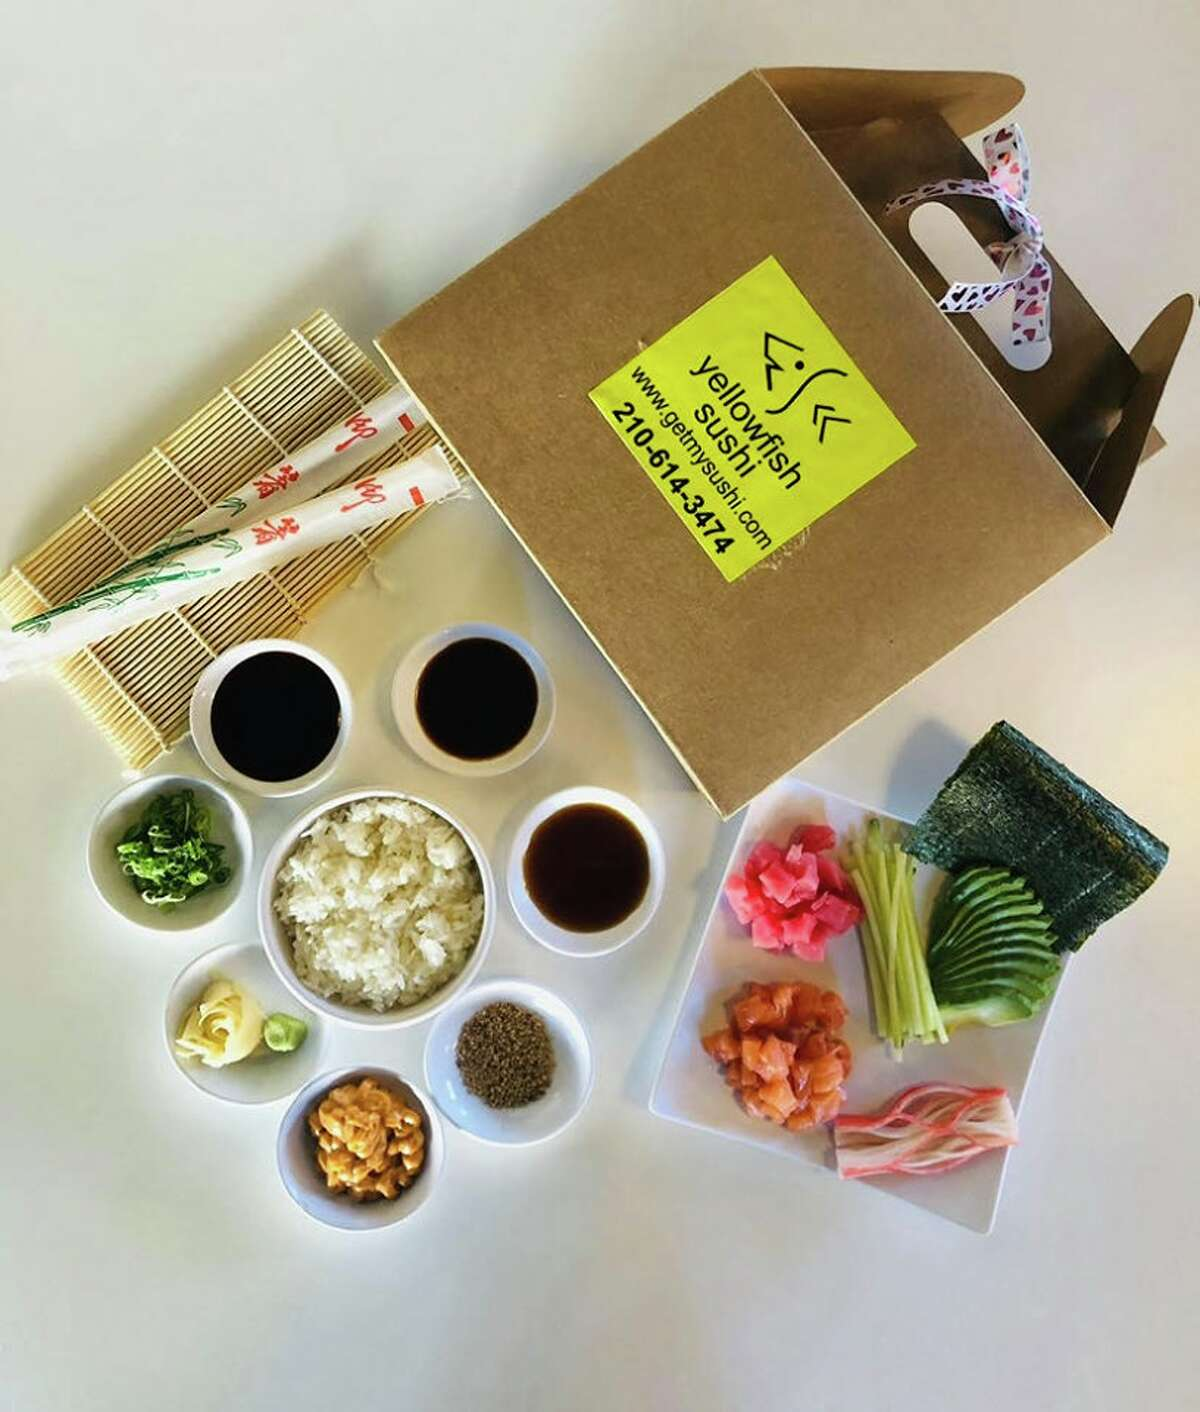 Yellowfish Sushi has a savory DIY kit for a meal you can make while you are supposed to stay at home during the coronavirus pandemic.